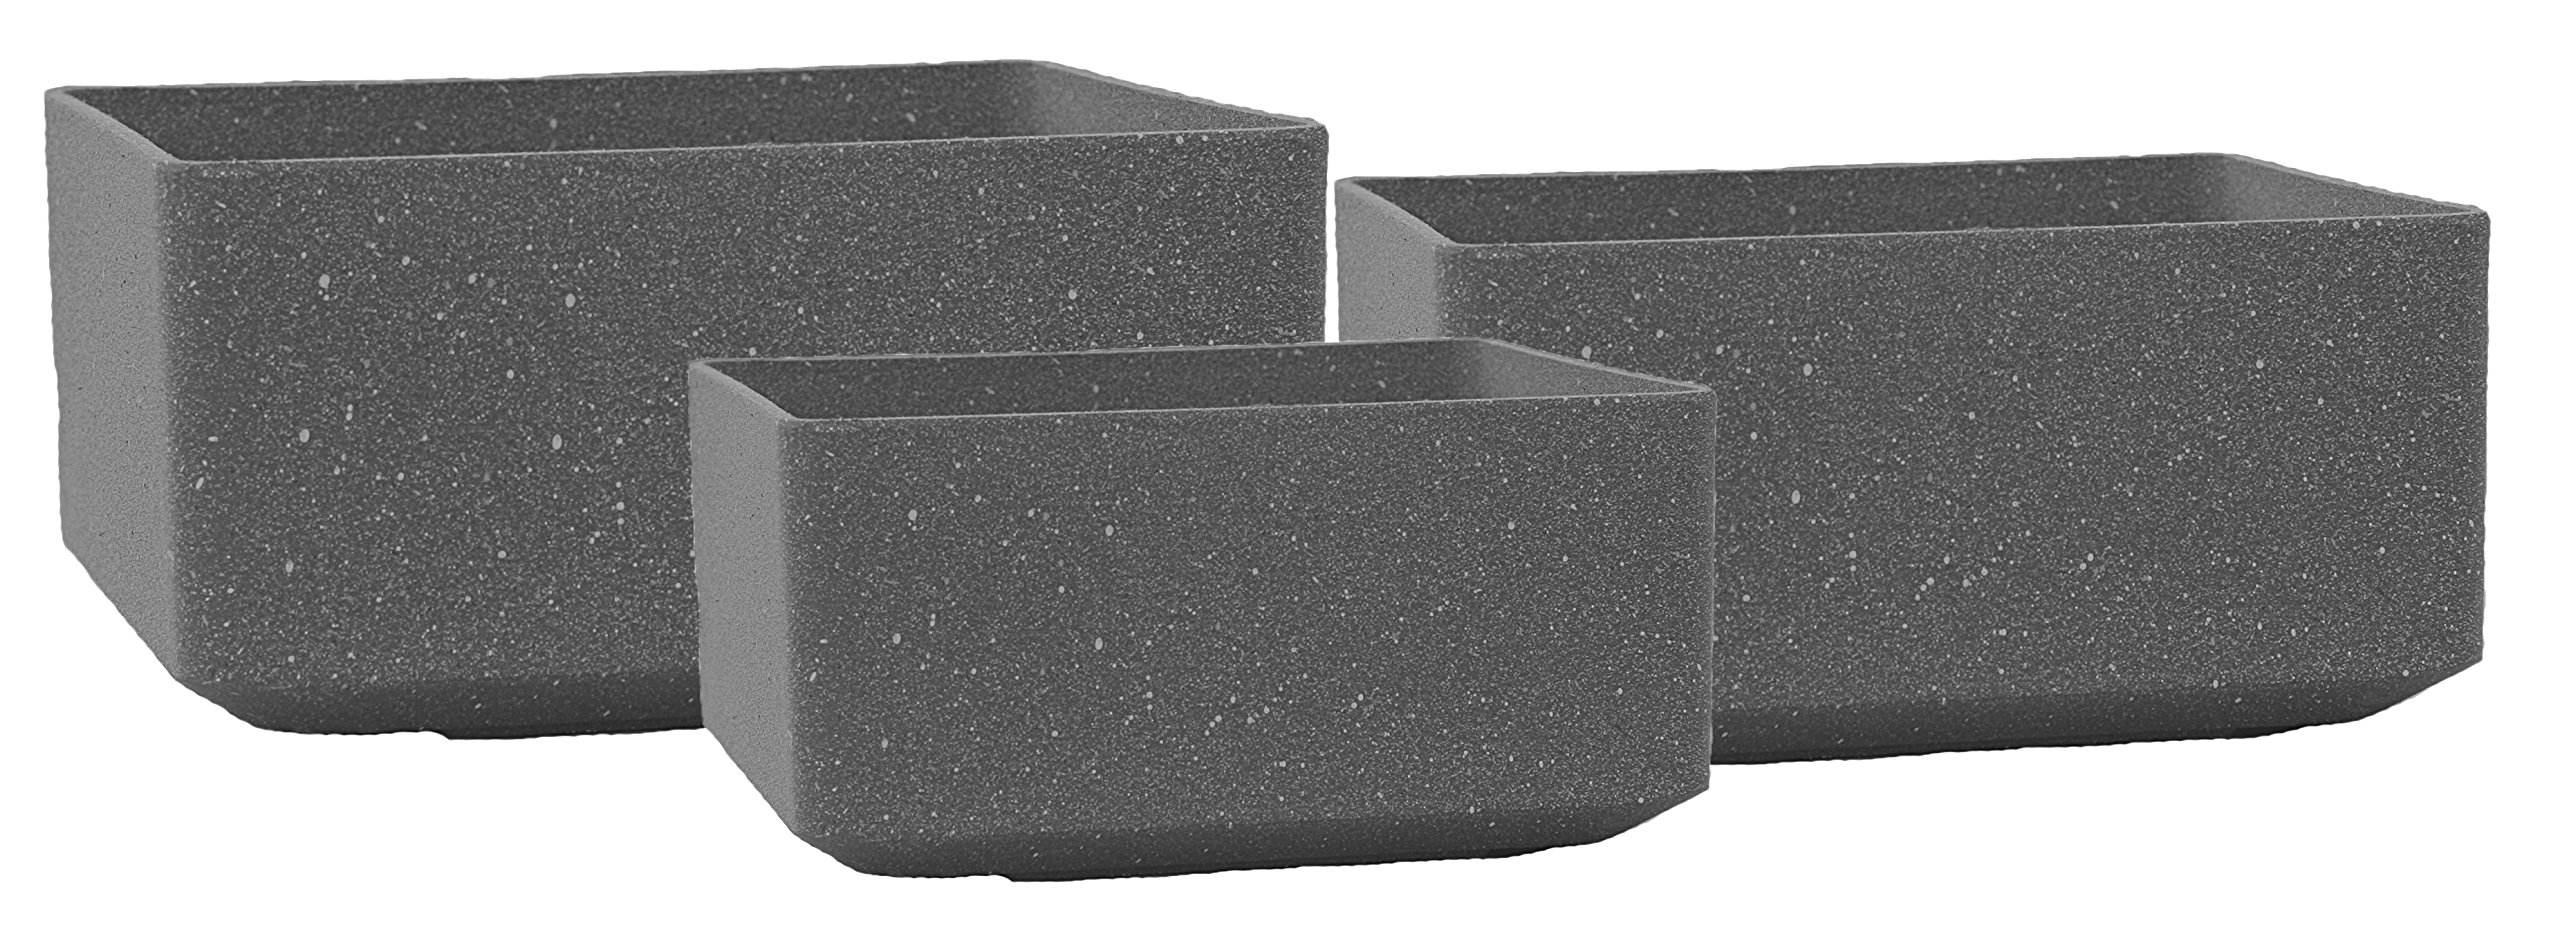 Stone Light AK Series Cast Stone Planter, Color - Baltic Grey